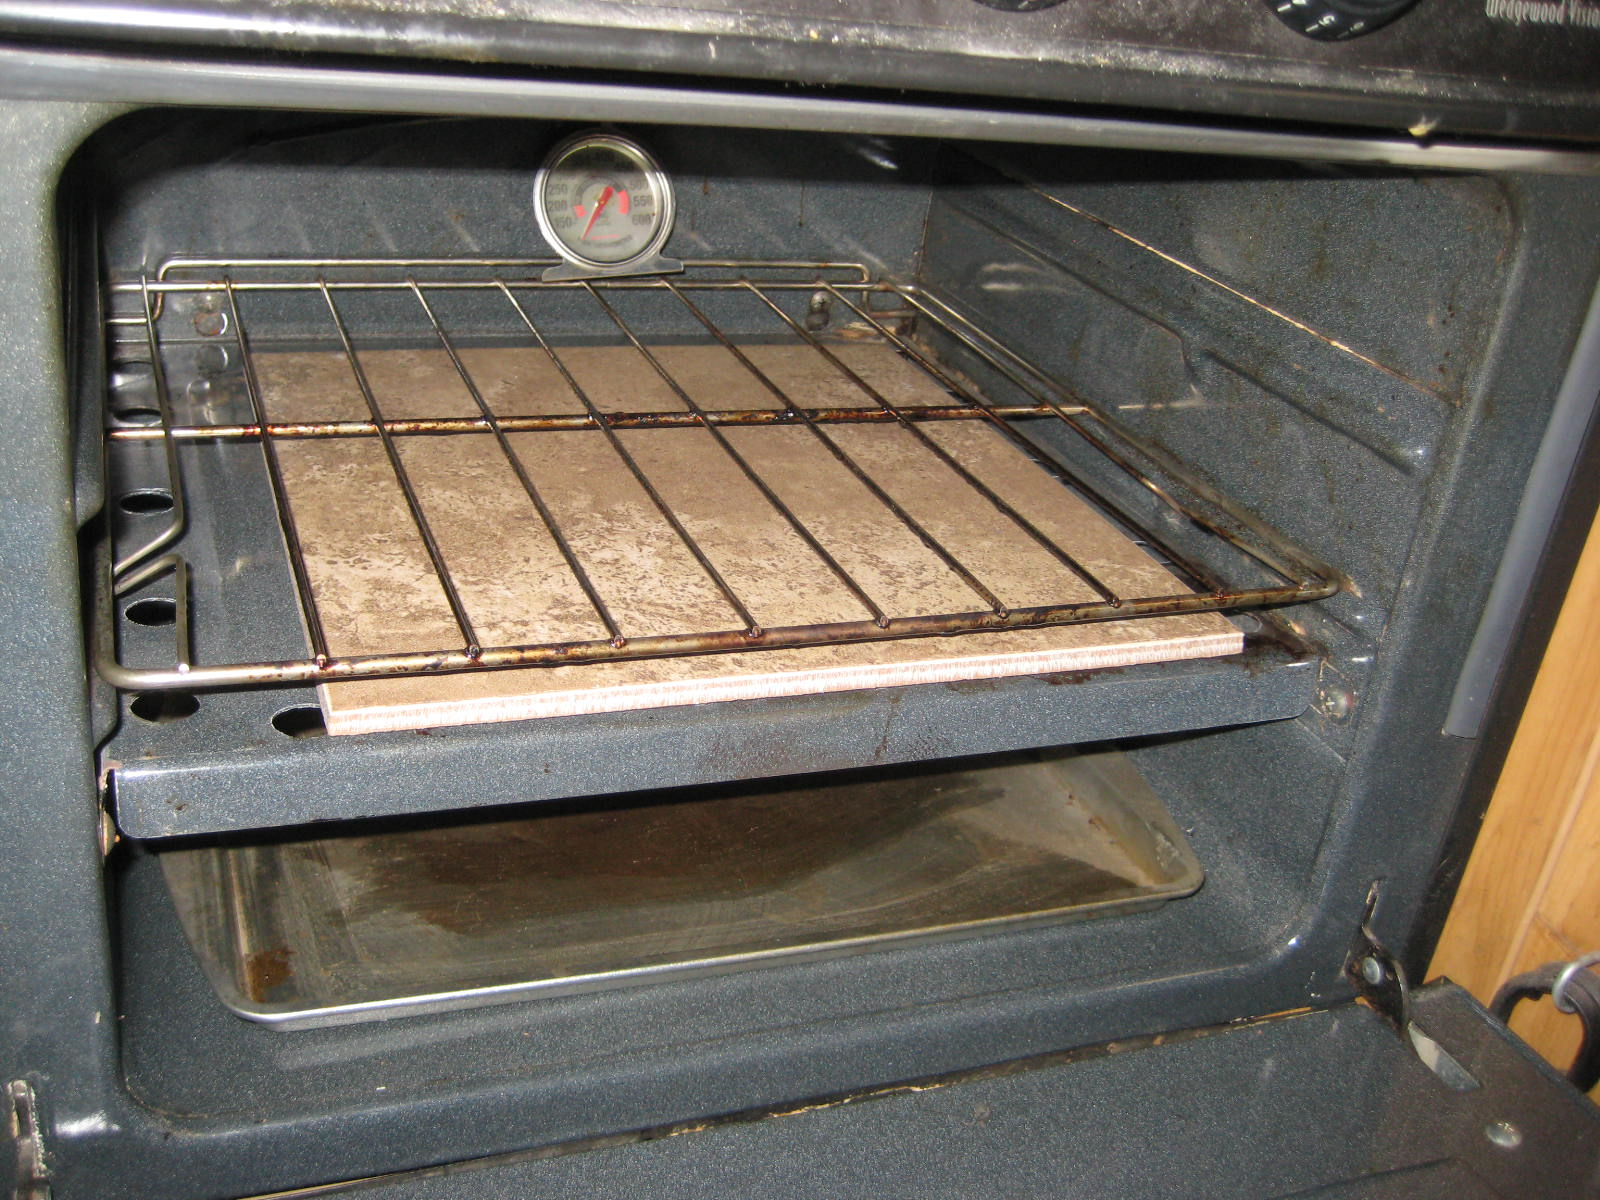 how to clean smoke residue from oven